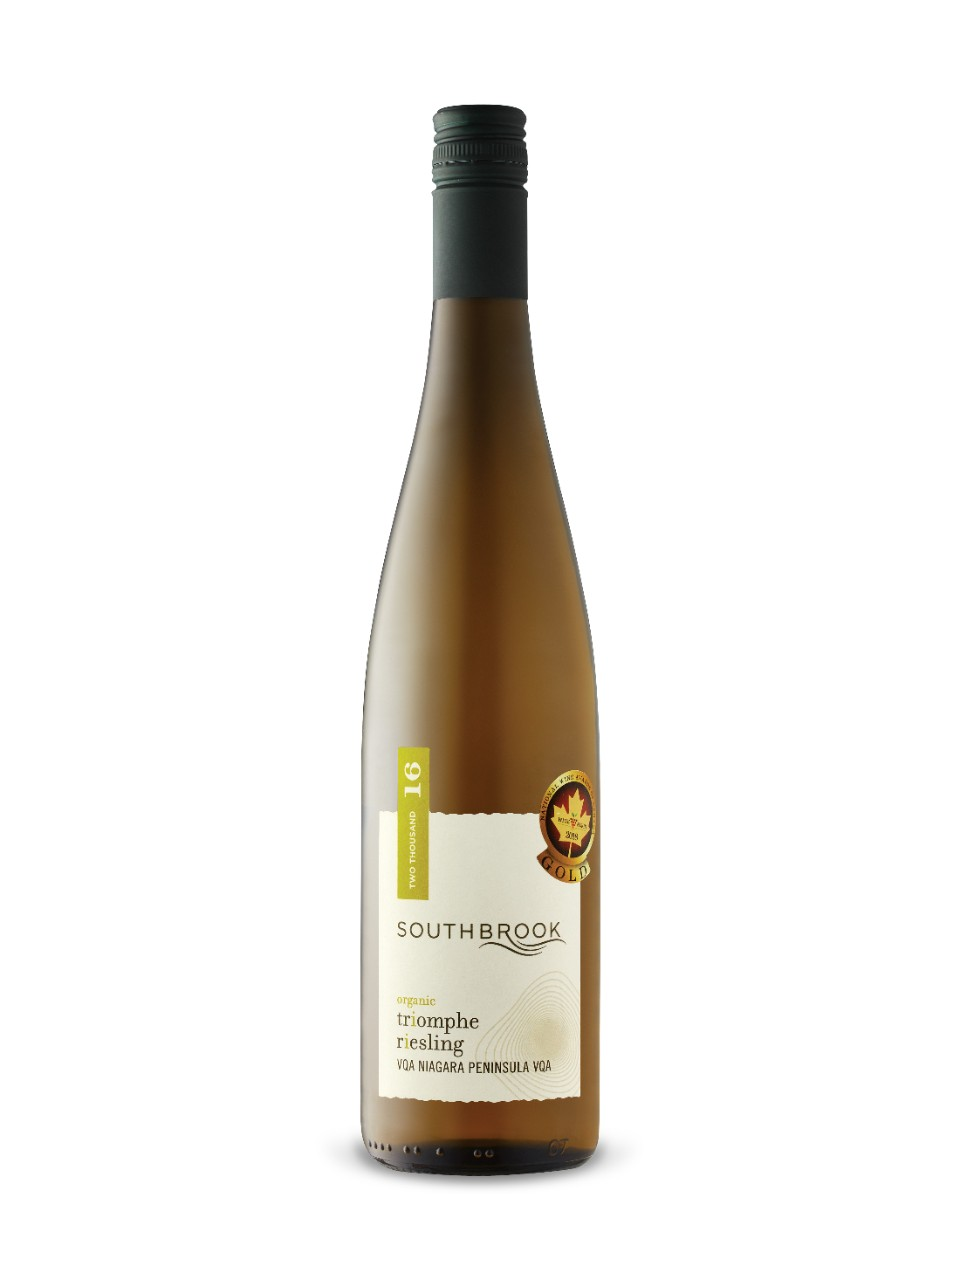 Image for Southbrook Triomphe Organic Riesling 2016 from LCBO